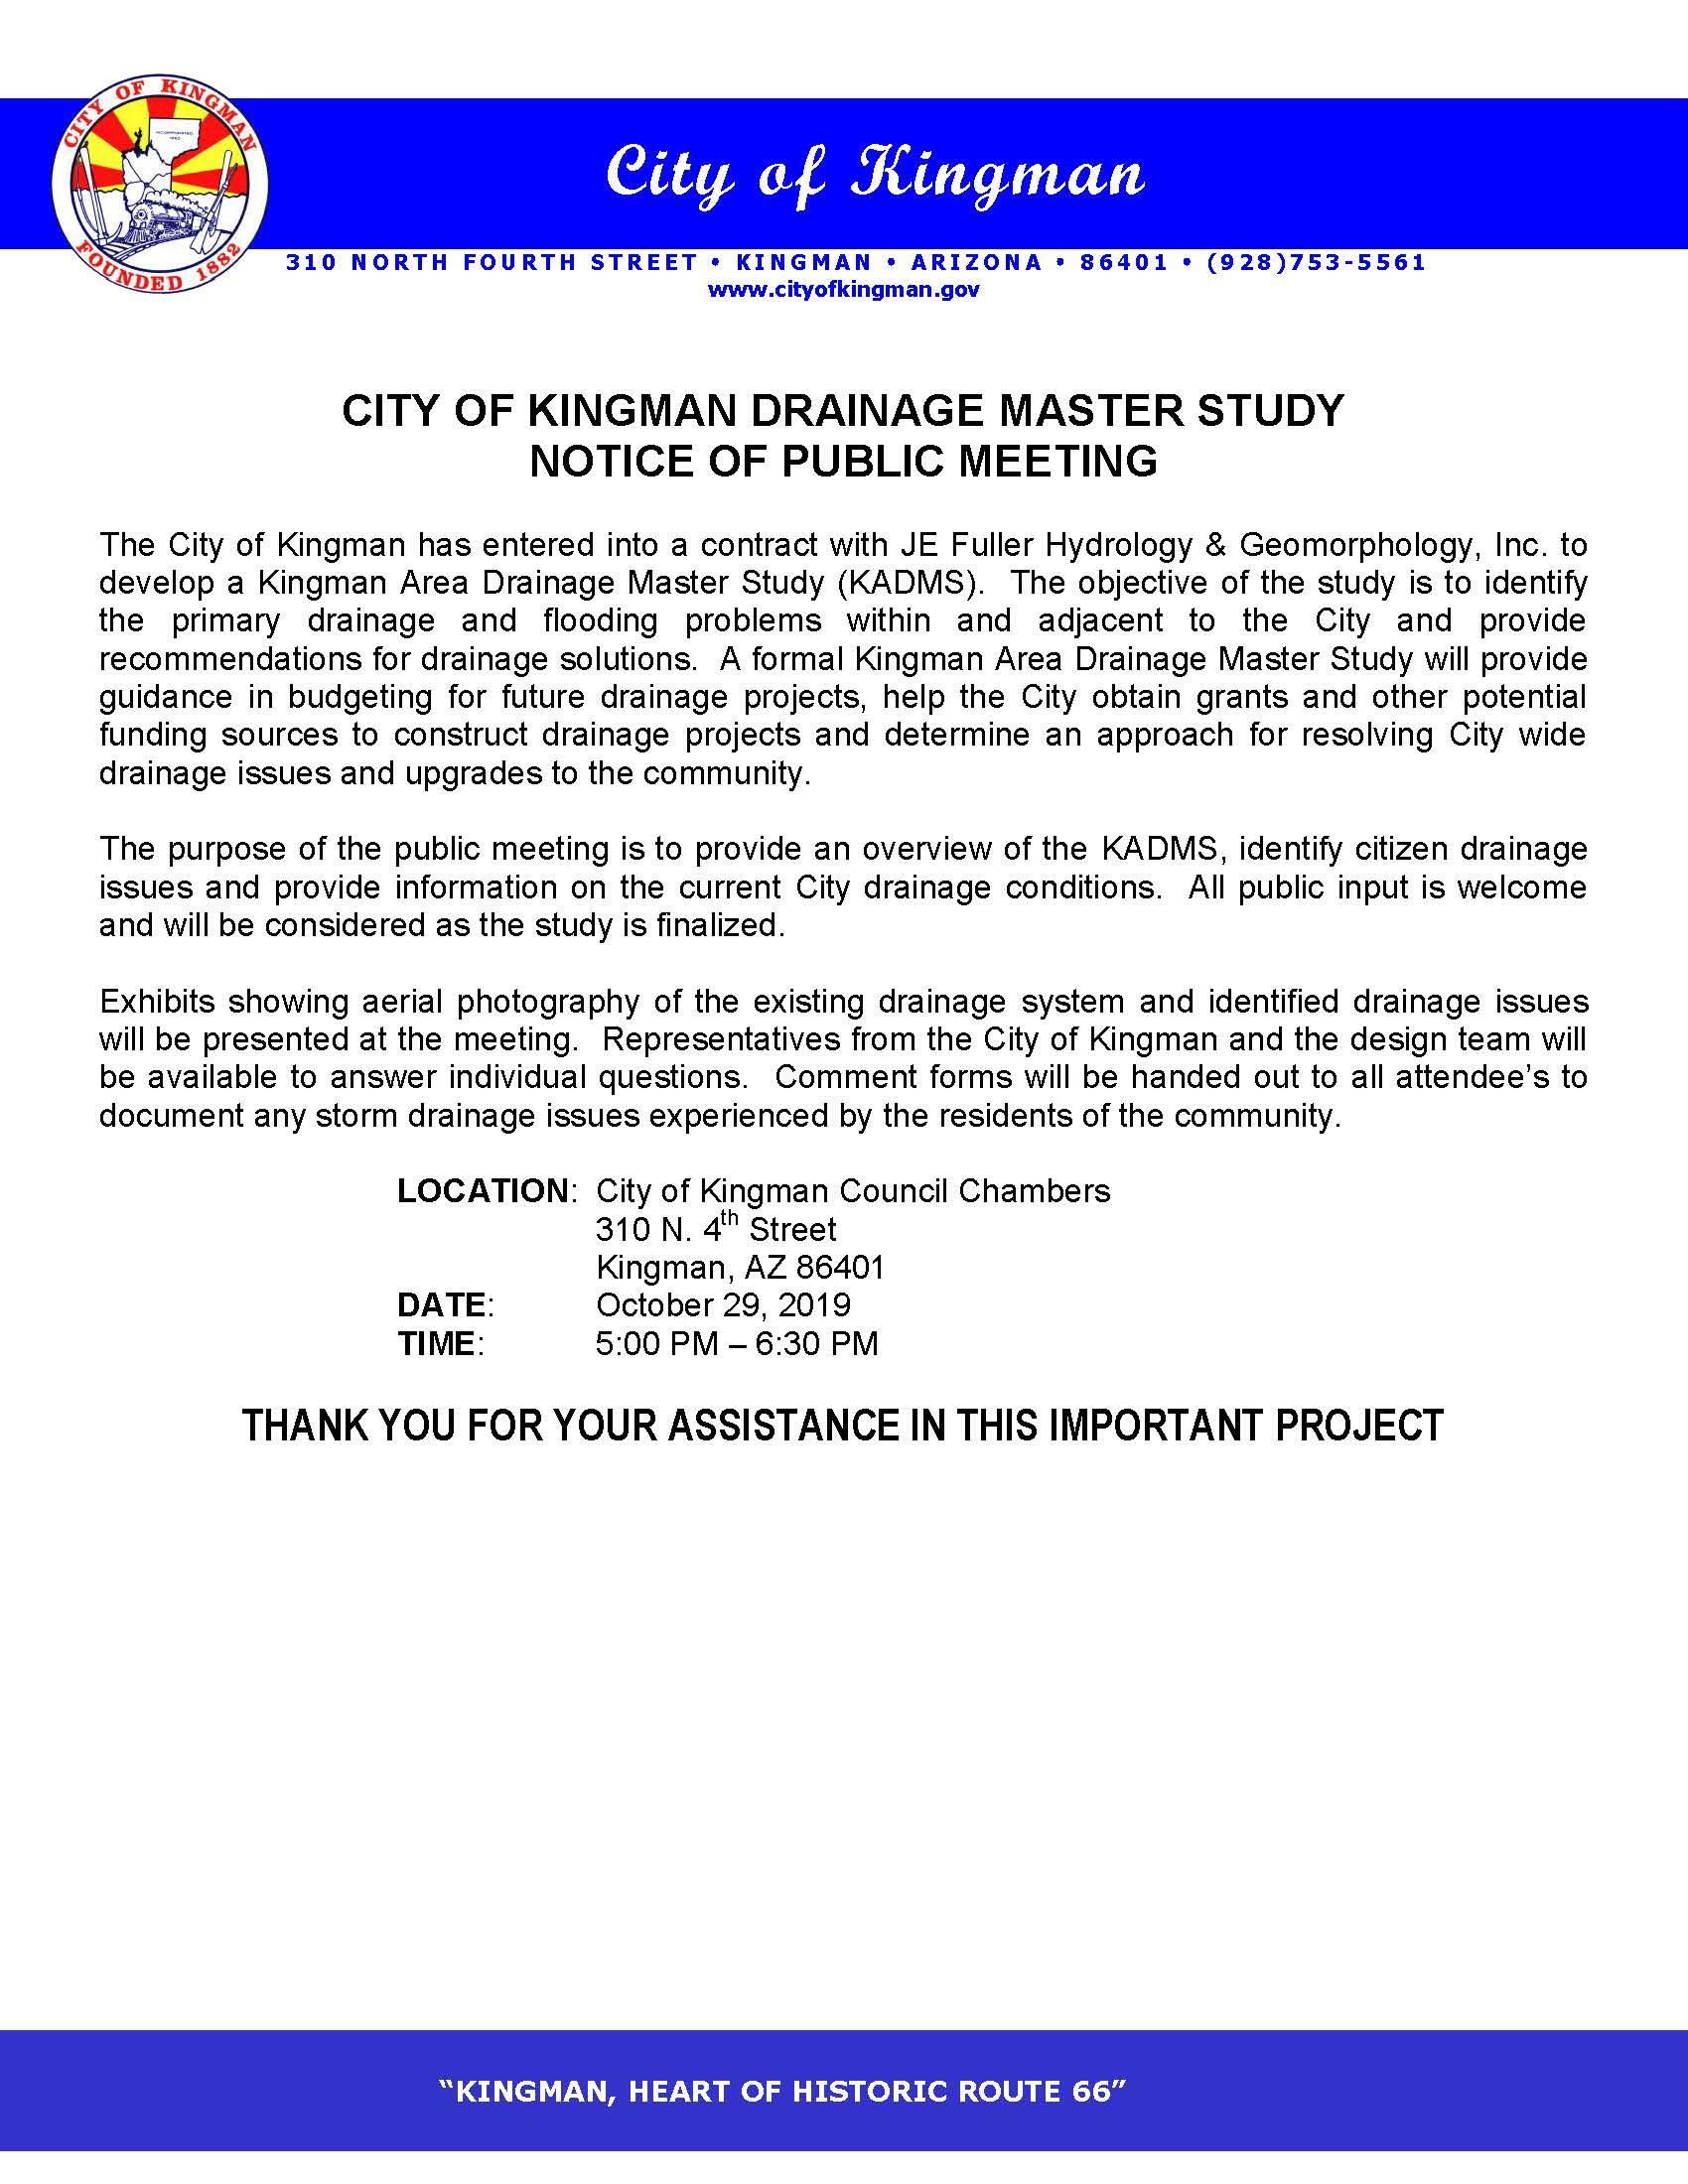 City of Kingman Drainage Master Study Public Meeting